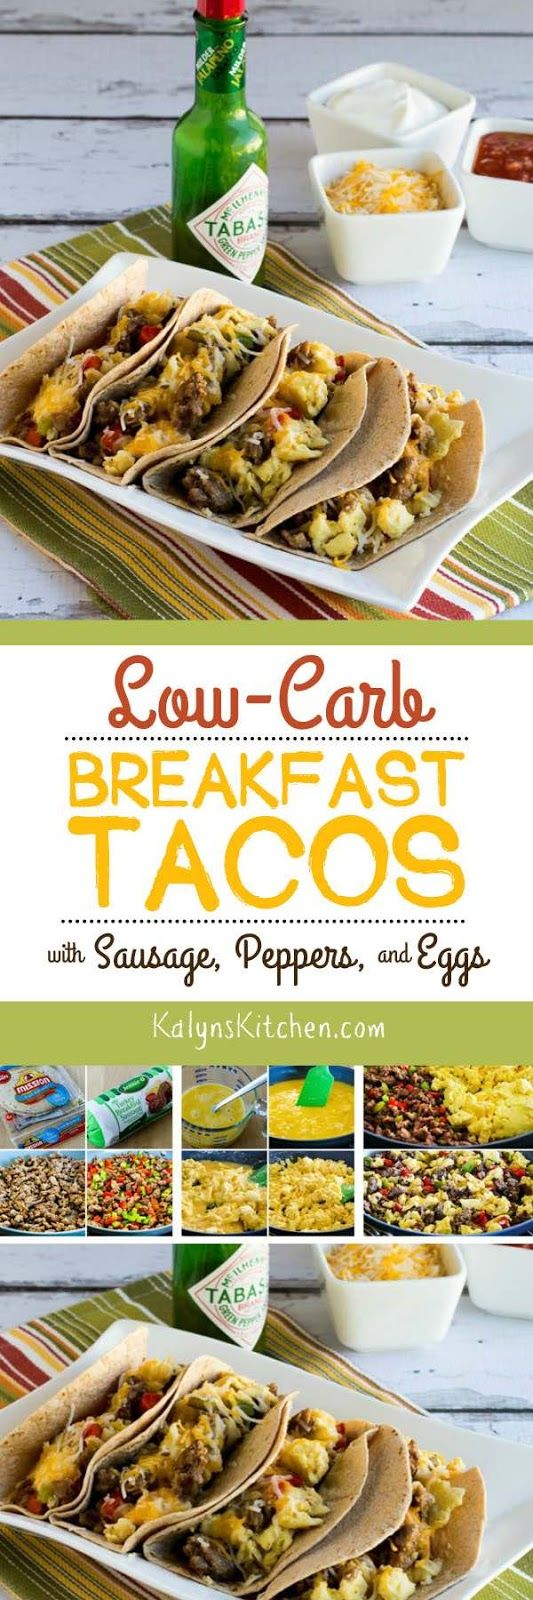 Low-Carb Breakfast Tacos with Sausage, Peppers, and Eggs (Video)